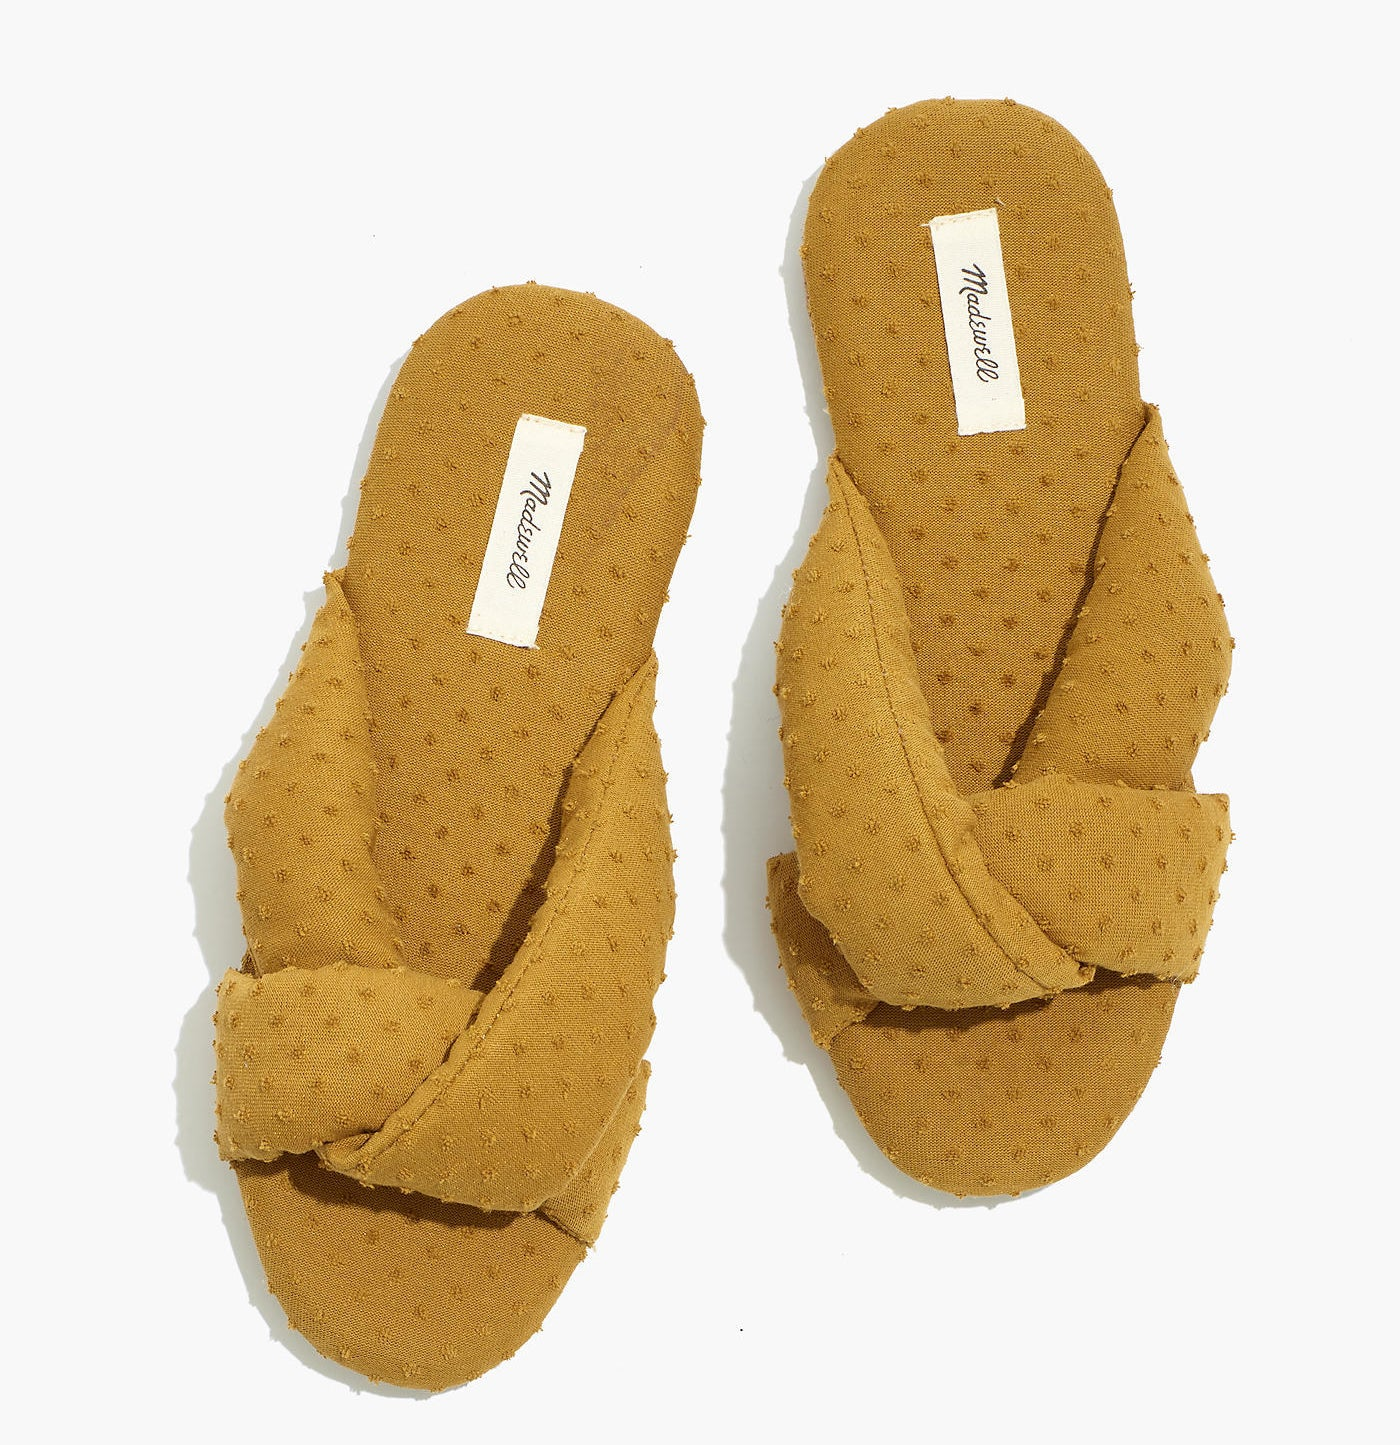 The gold shade clipdot slippers